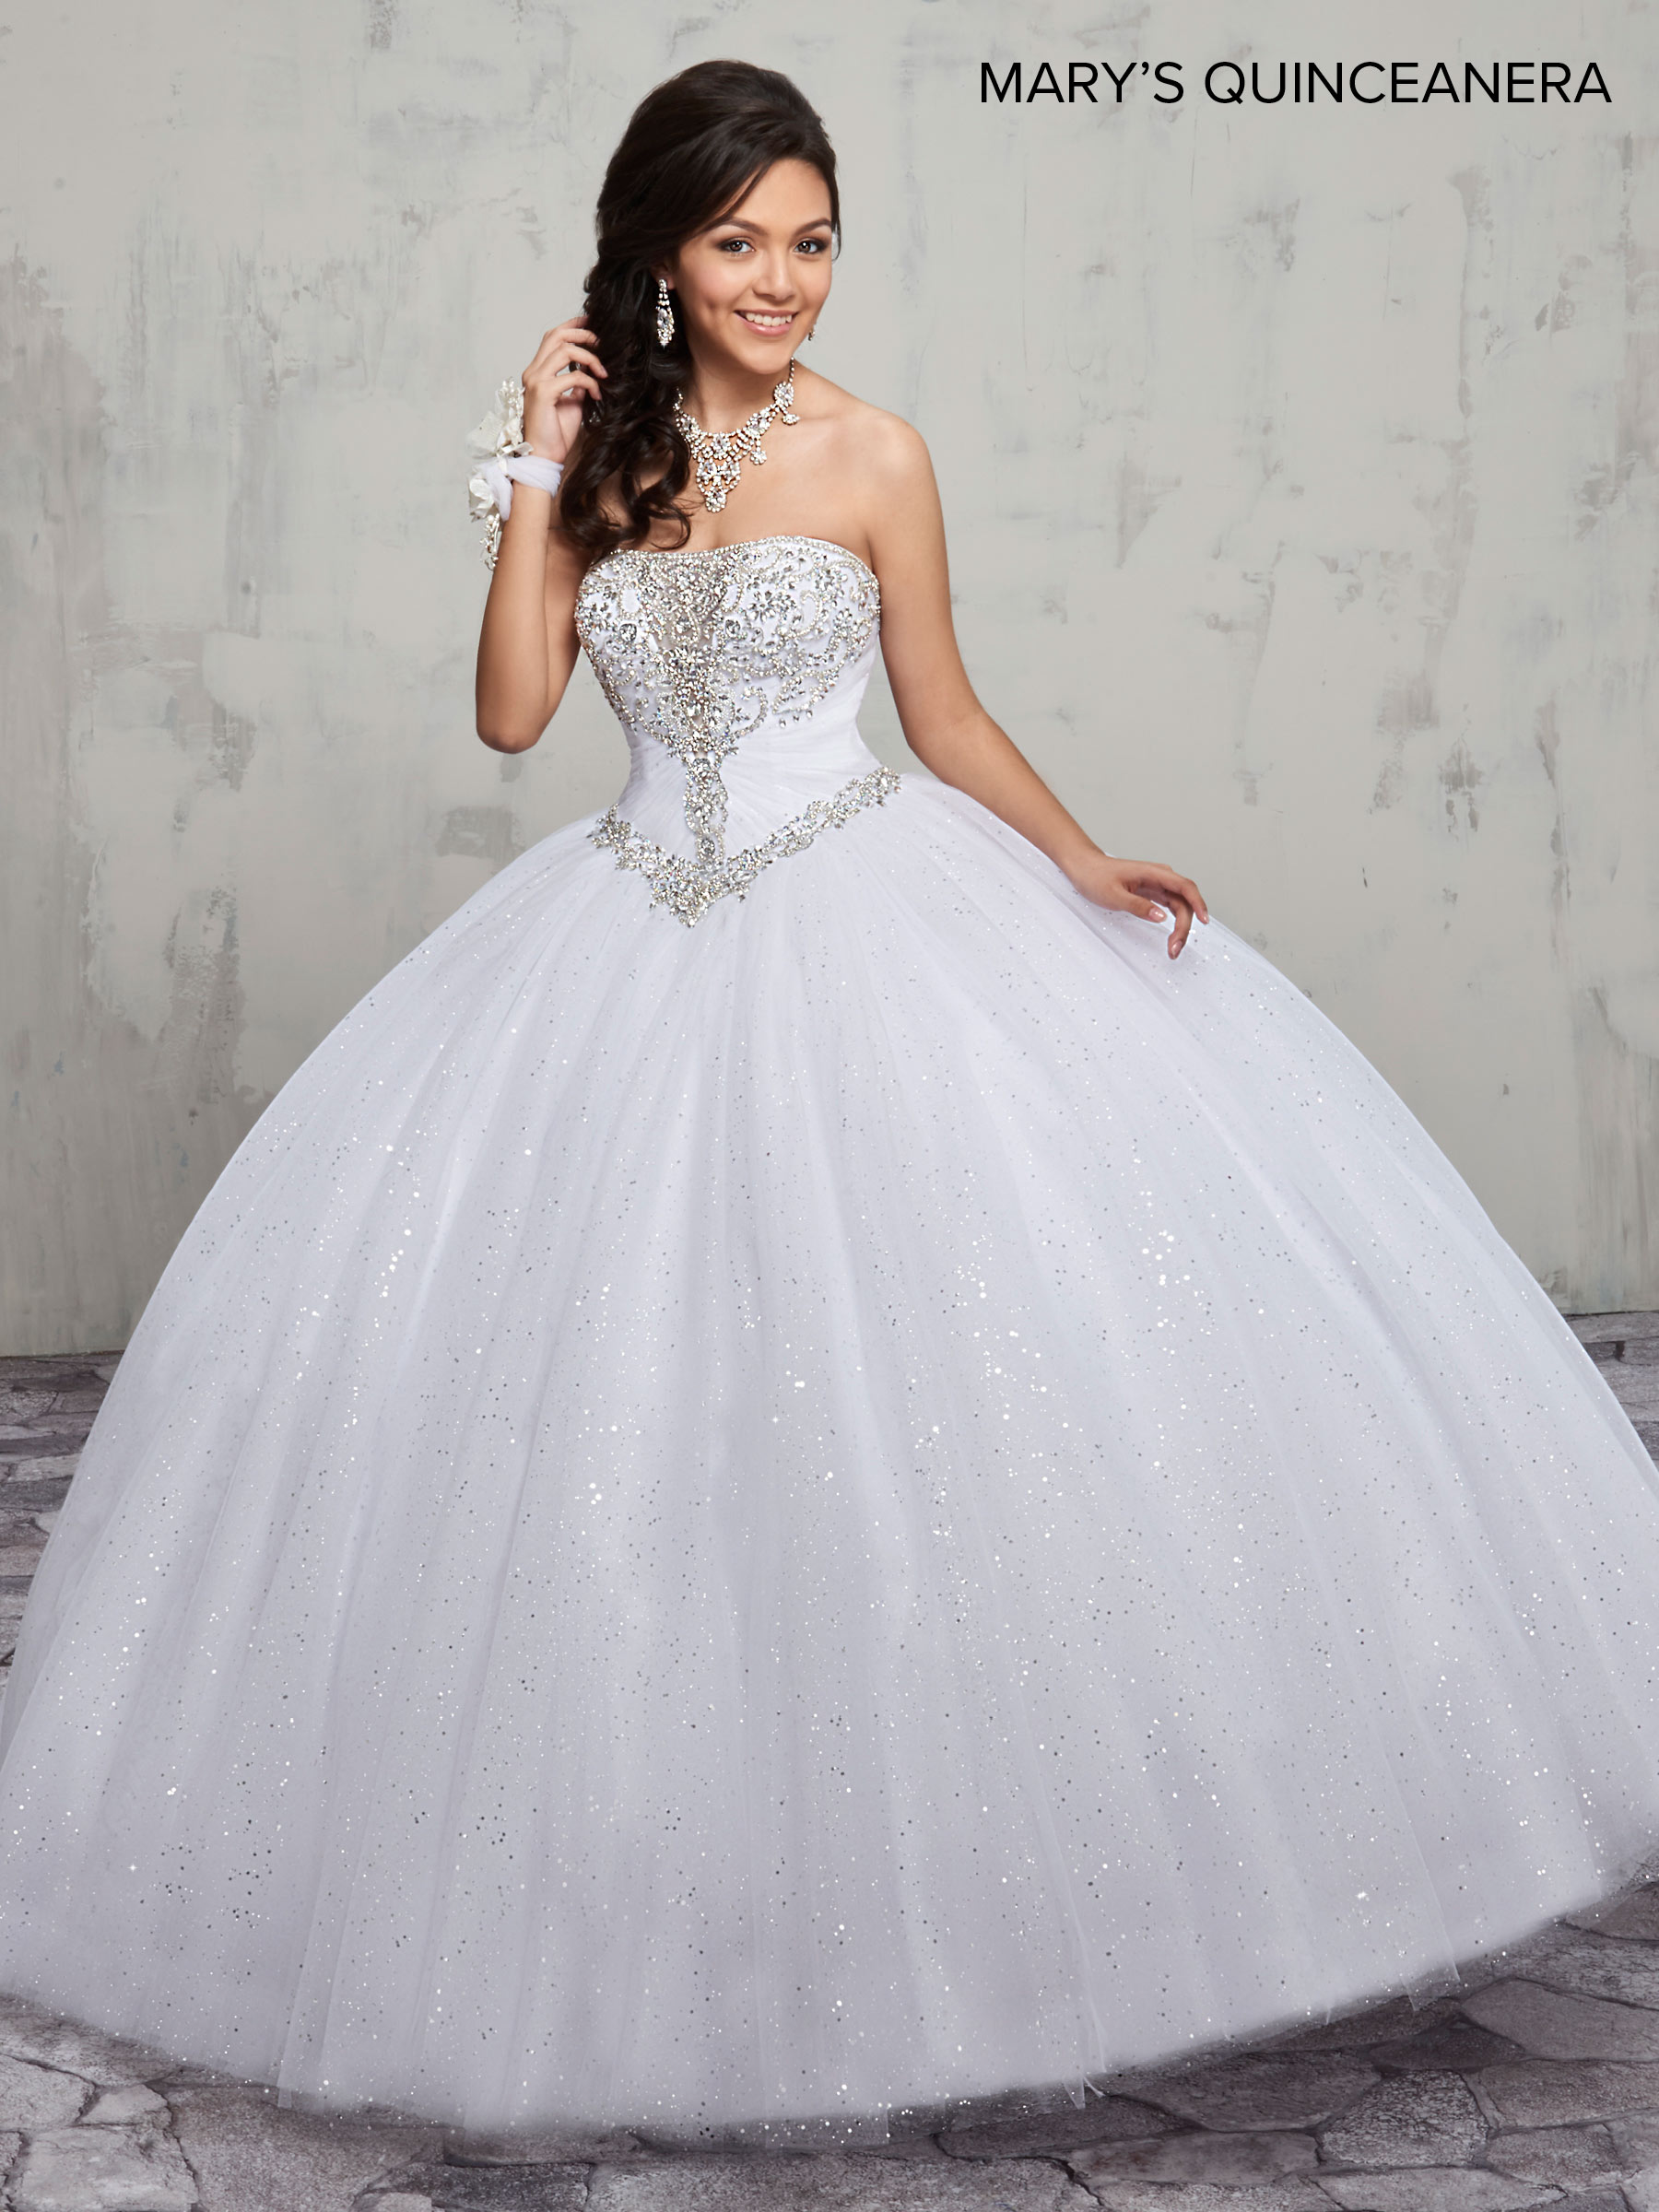 Marys Quinceanera Dresses | Mary's Quinceanera | Style - MQ1011